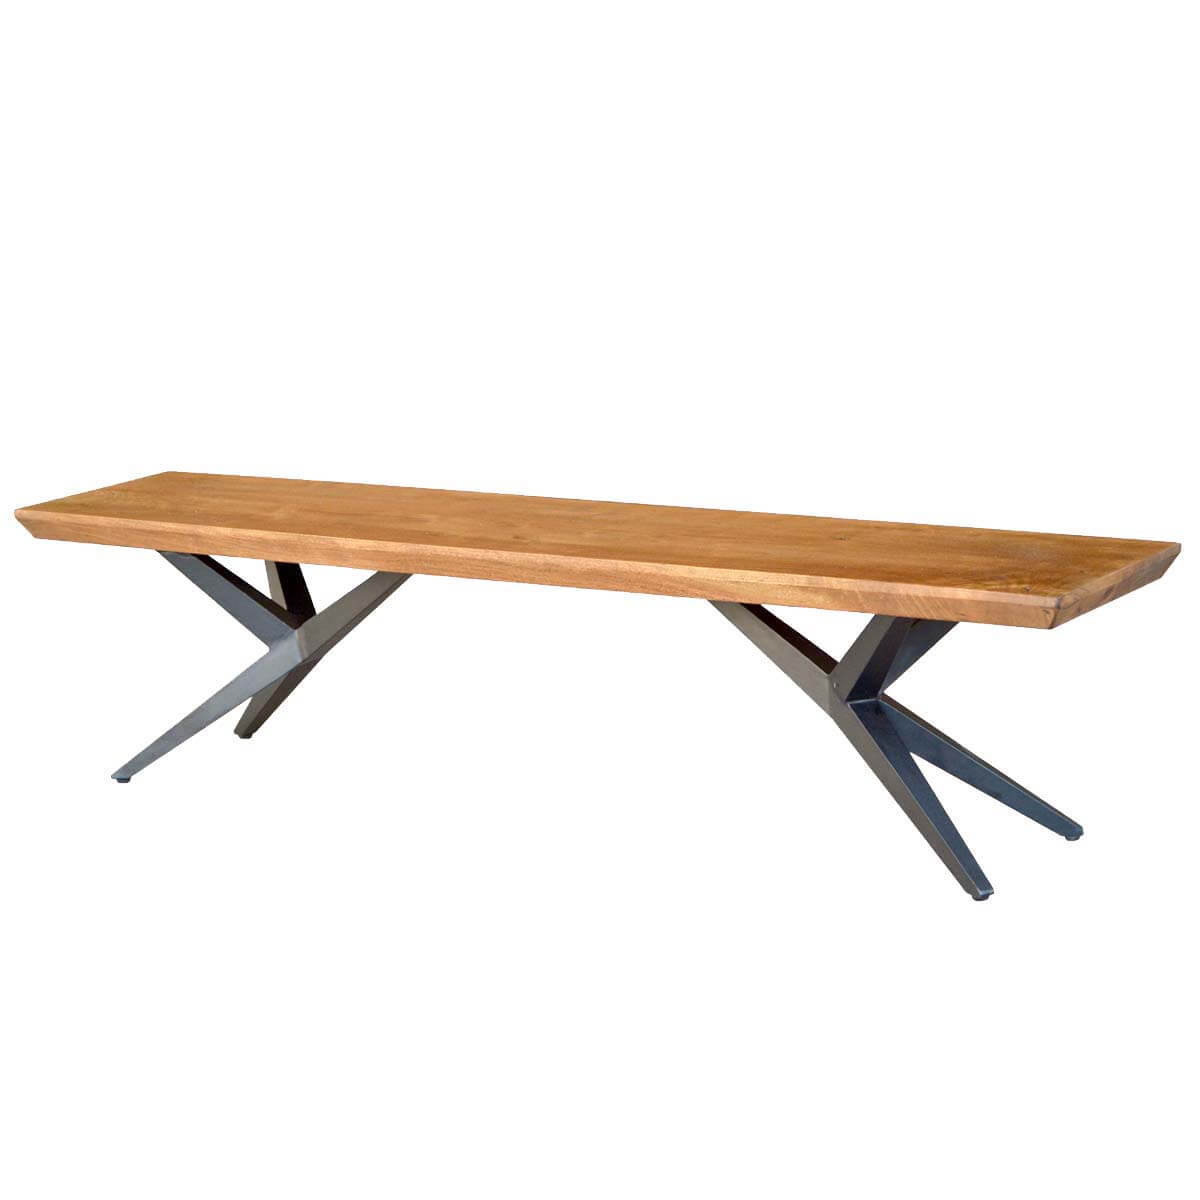 Lorna Contemporary Acacia Wood Industrial Airloft Bench